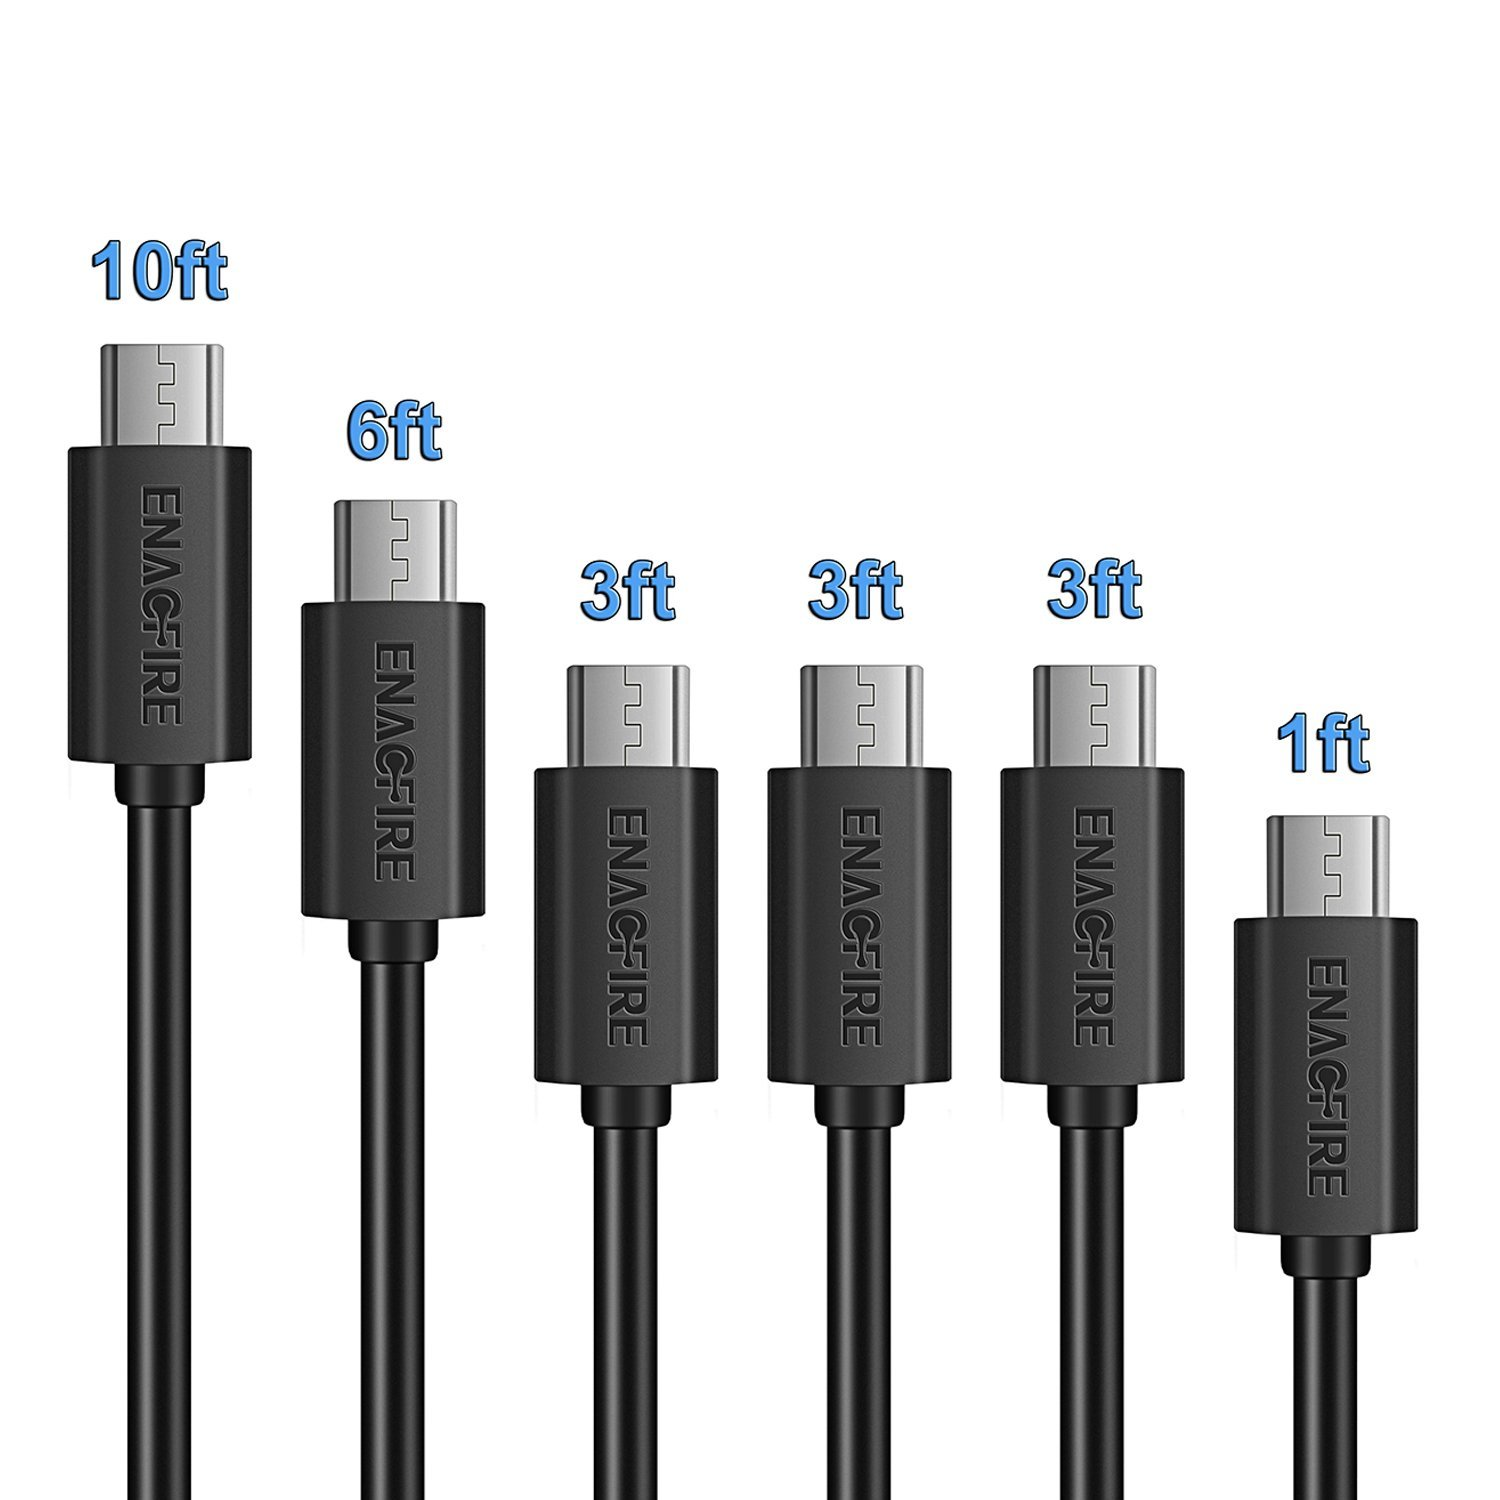 Amazon.com: Micro USB Cable,ENACFIRE Powerline [6-Pack] (1ft, 3x3ft ...